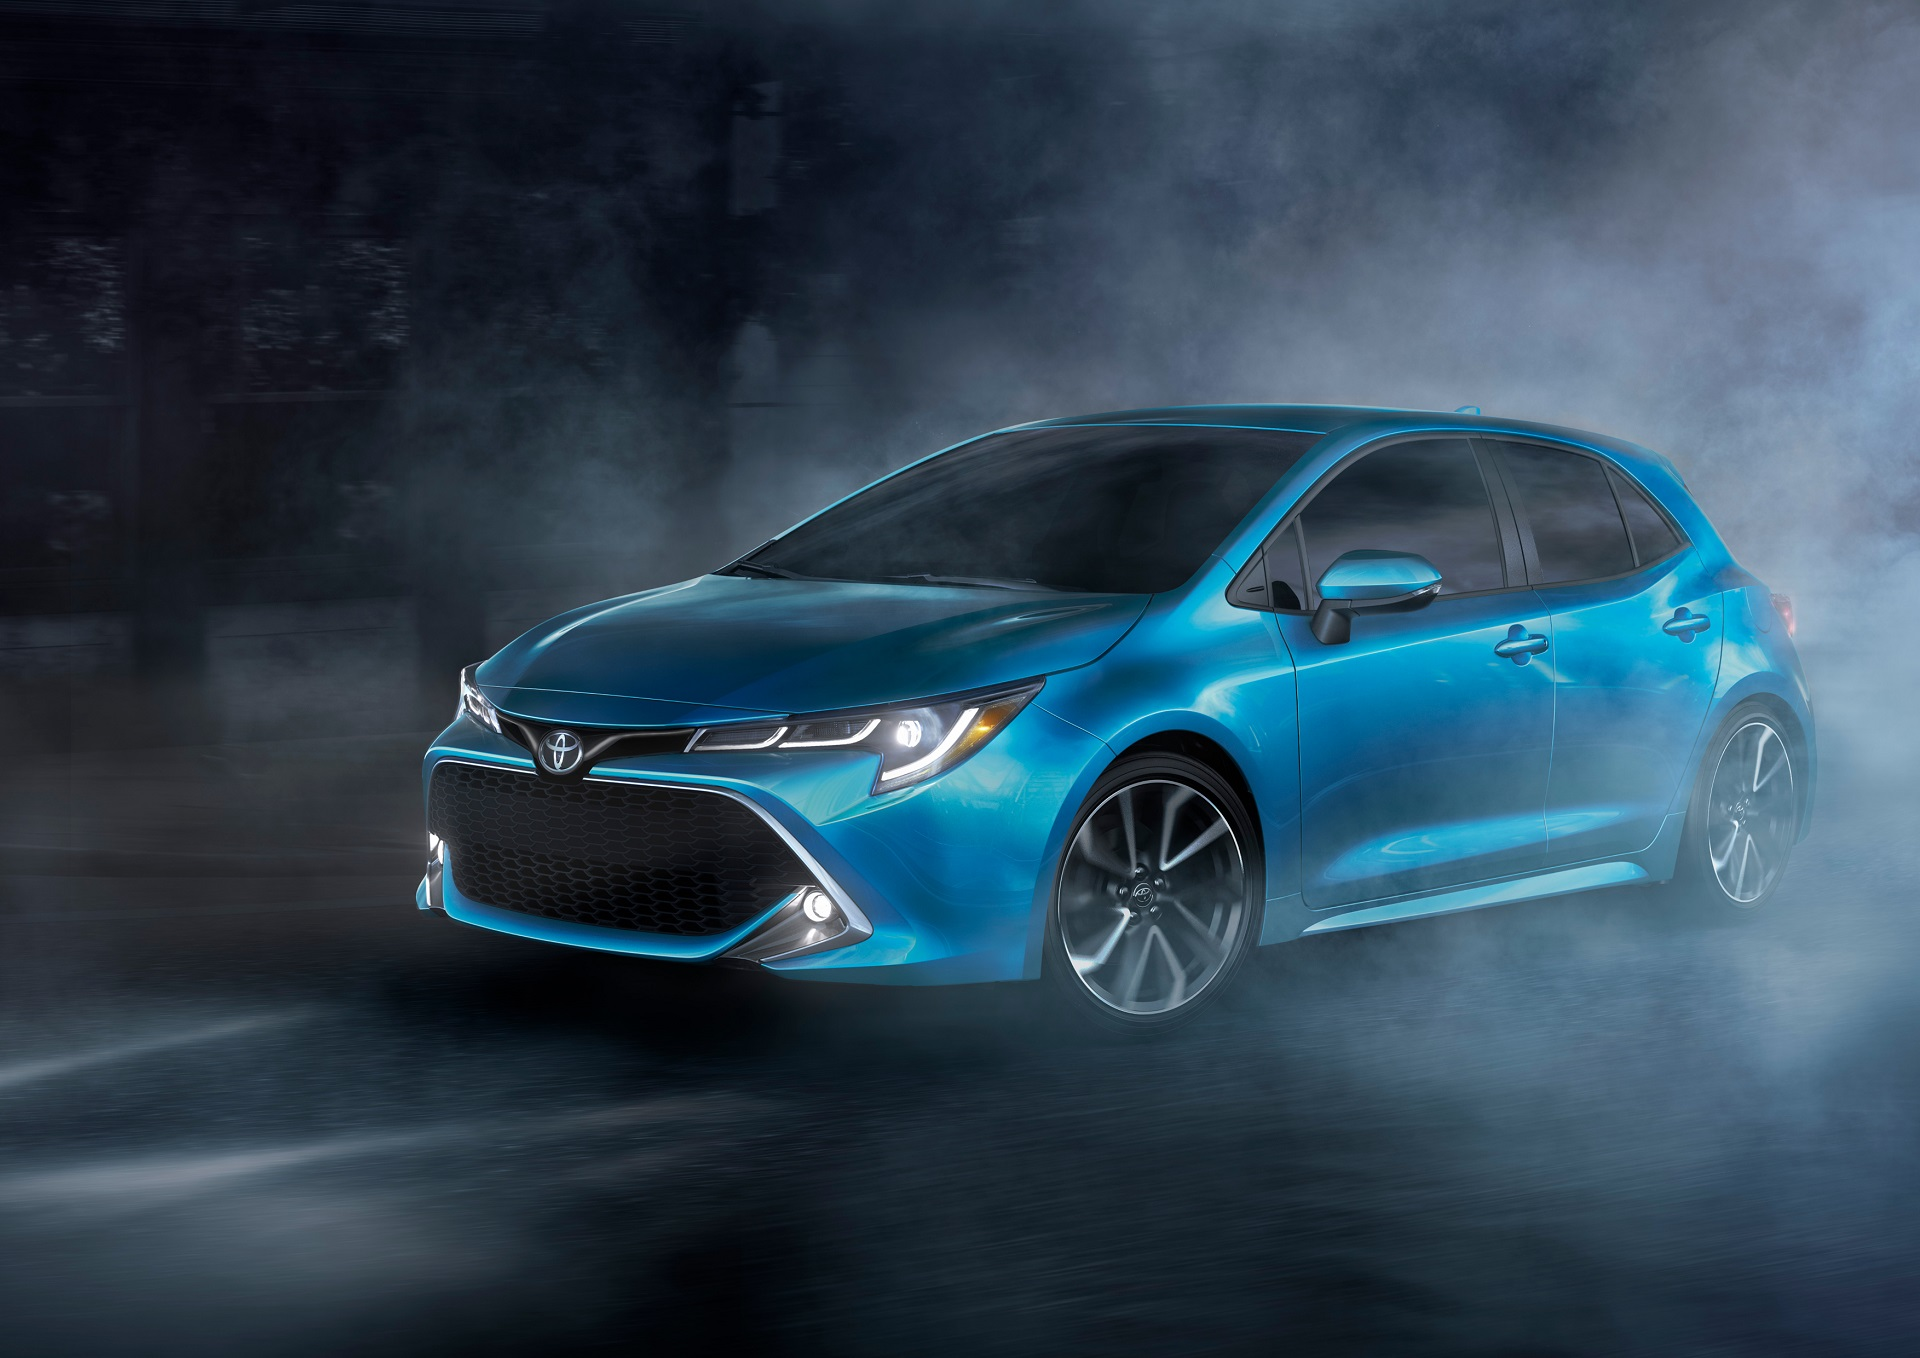 Corolla Hatchback is On the Way